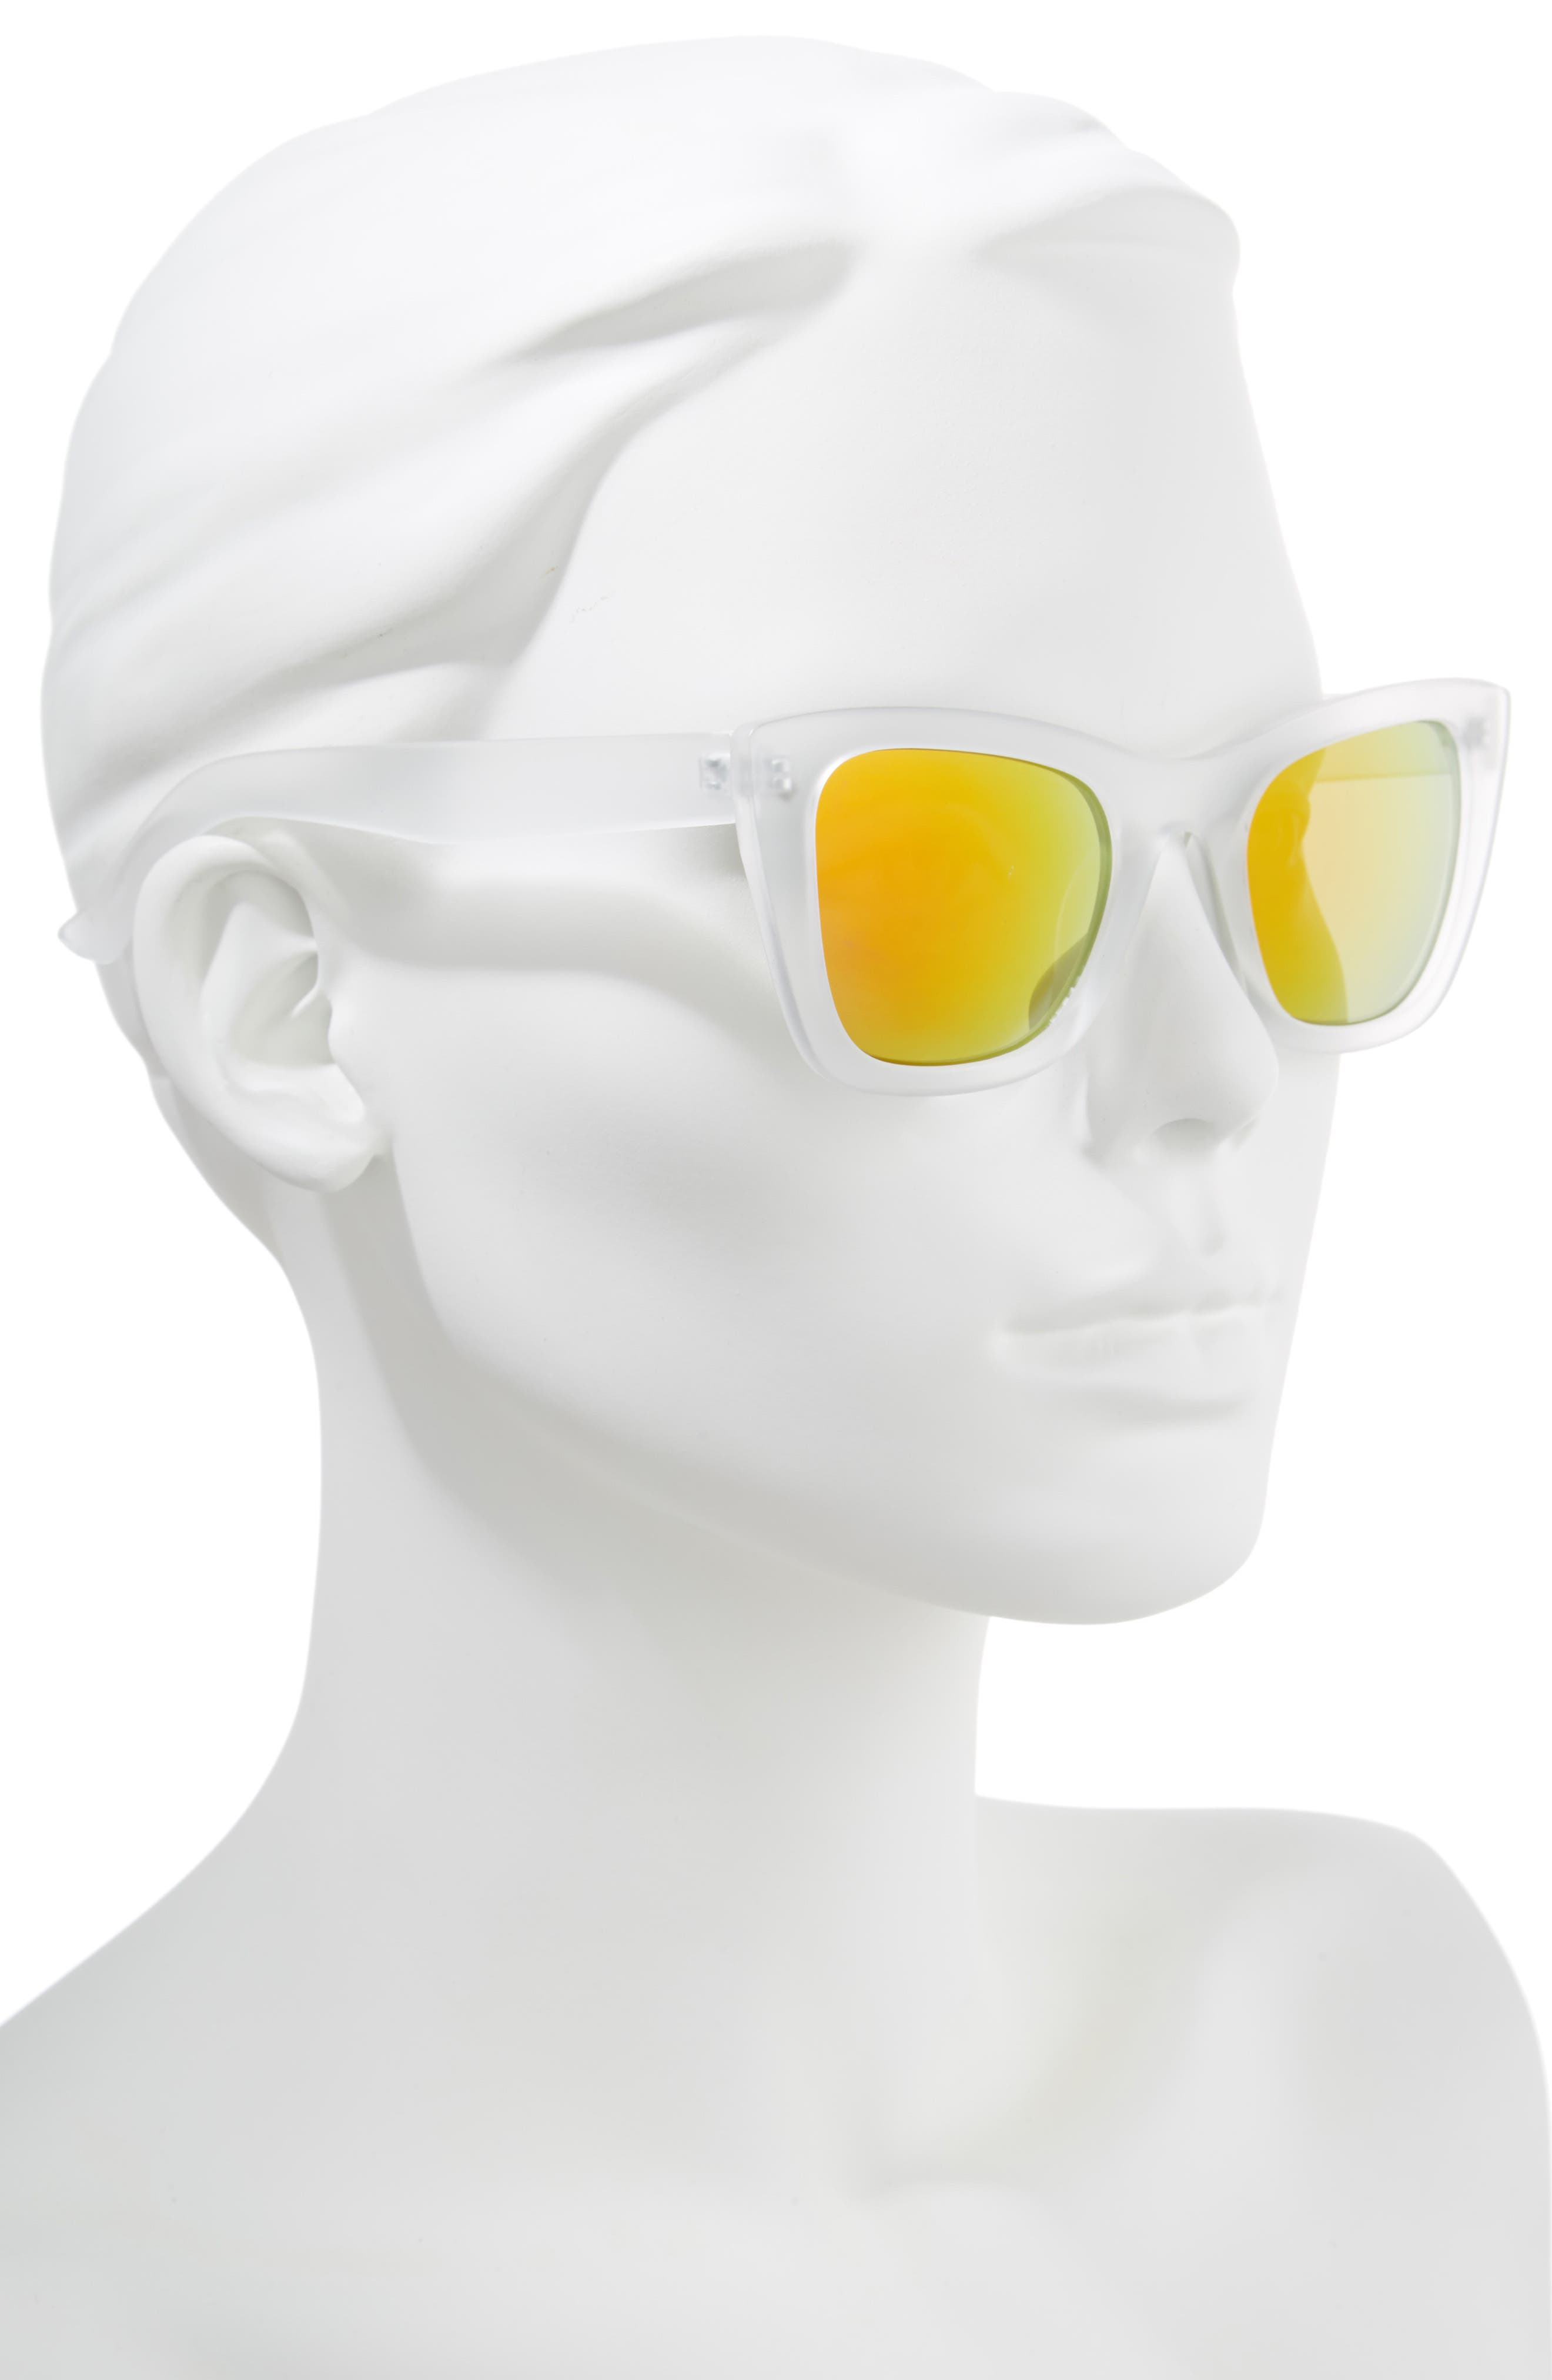 51mm Translucent Square Sunglasses,                             Alternate thumbnail 2, color,                             Clear/ Gold